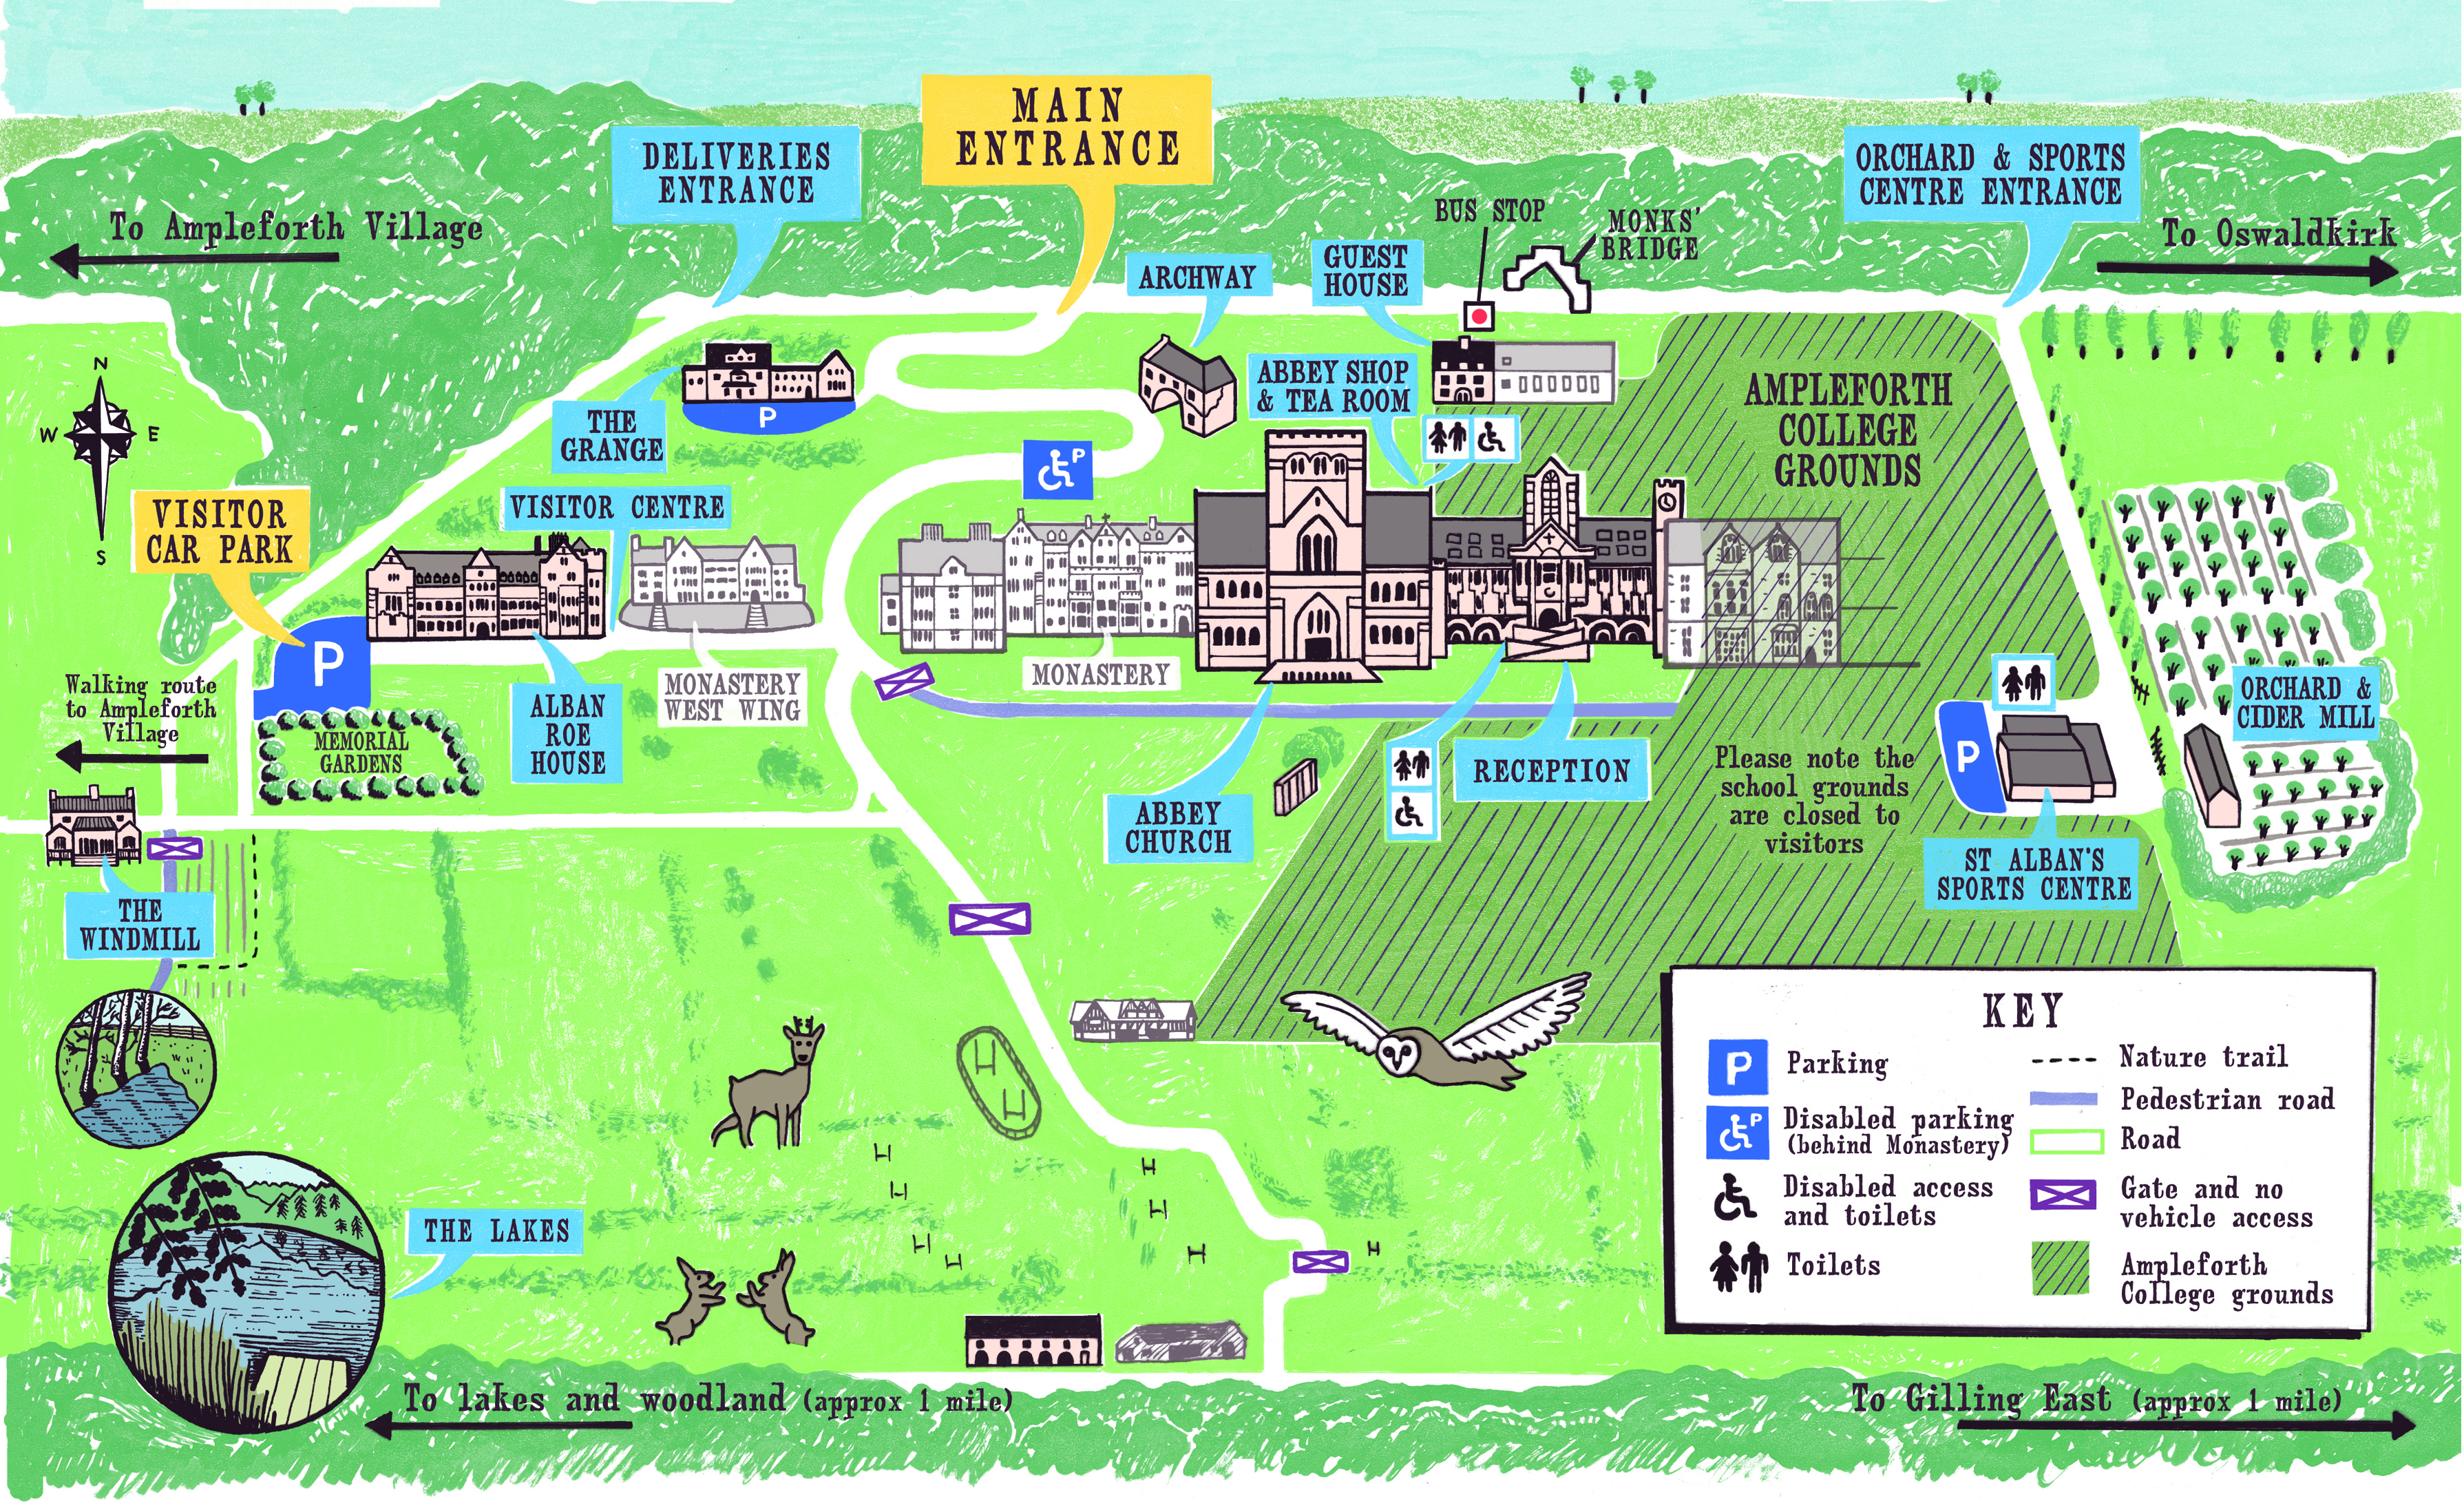 Ampleforth Campus Map